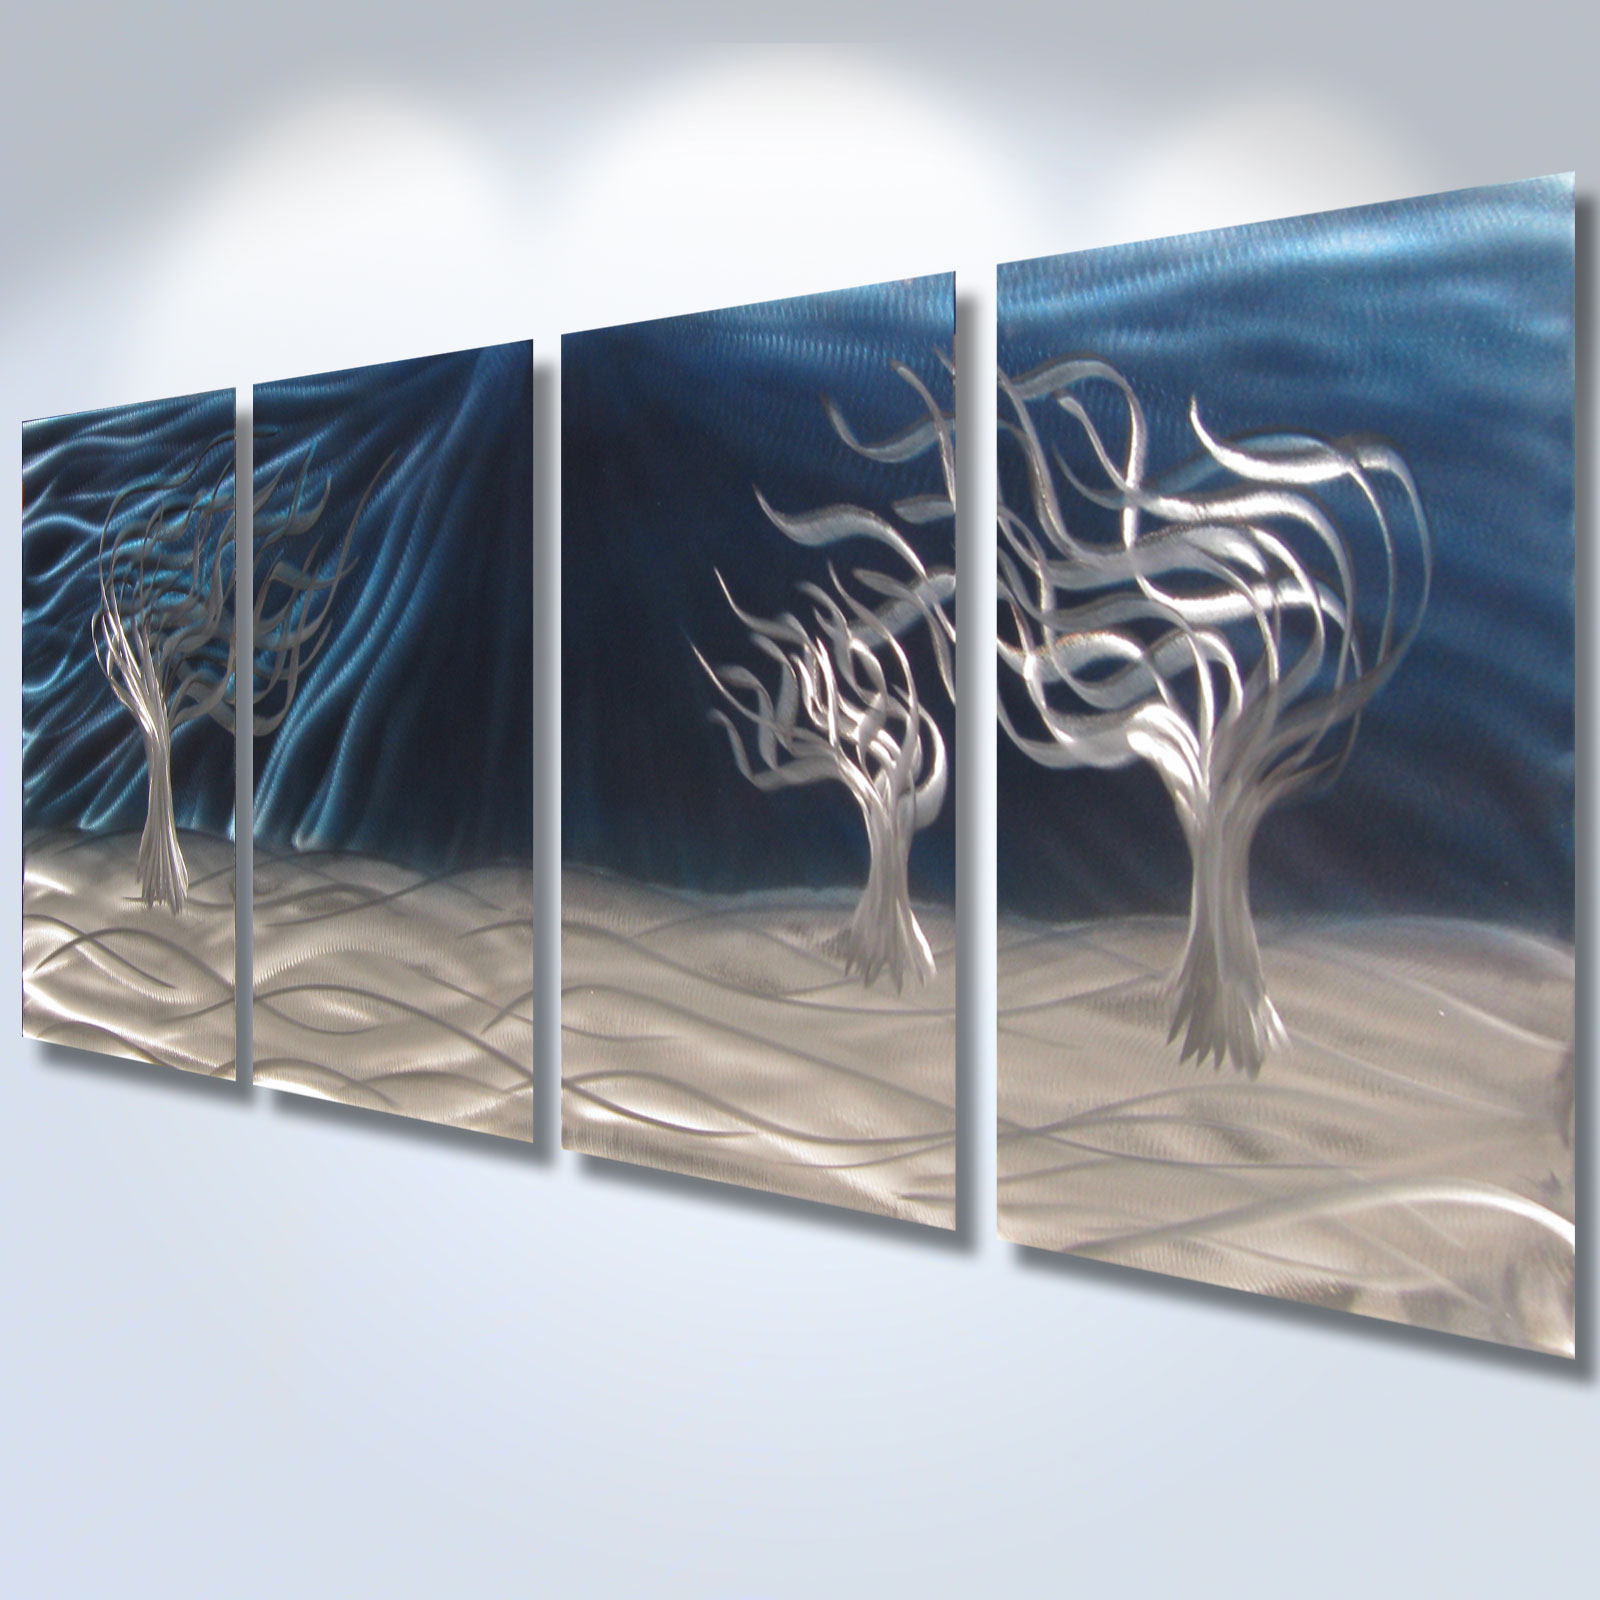 Blue Metal Wall Art Amazing 3 Trees Blue  Abstract Metal Wall Art Contemporary Modern Decor Inspiration Design